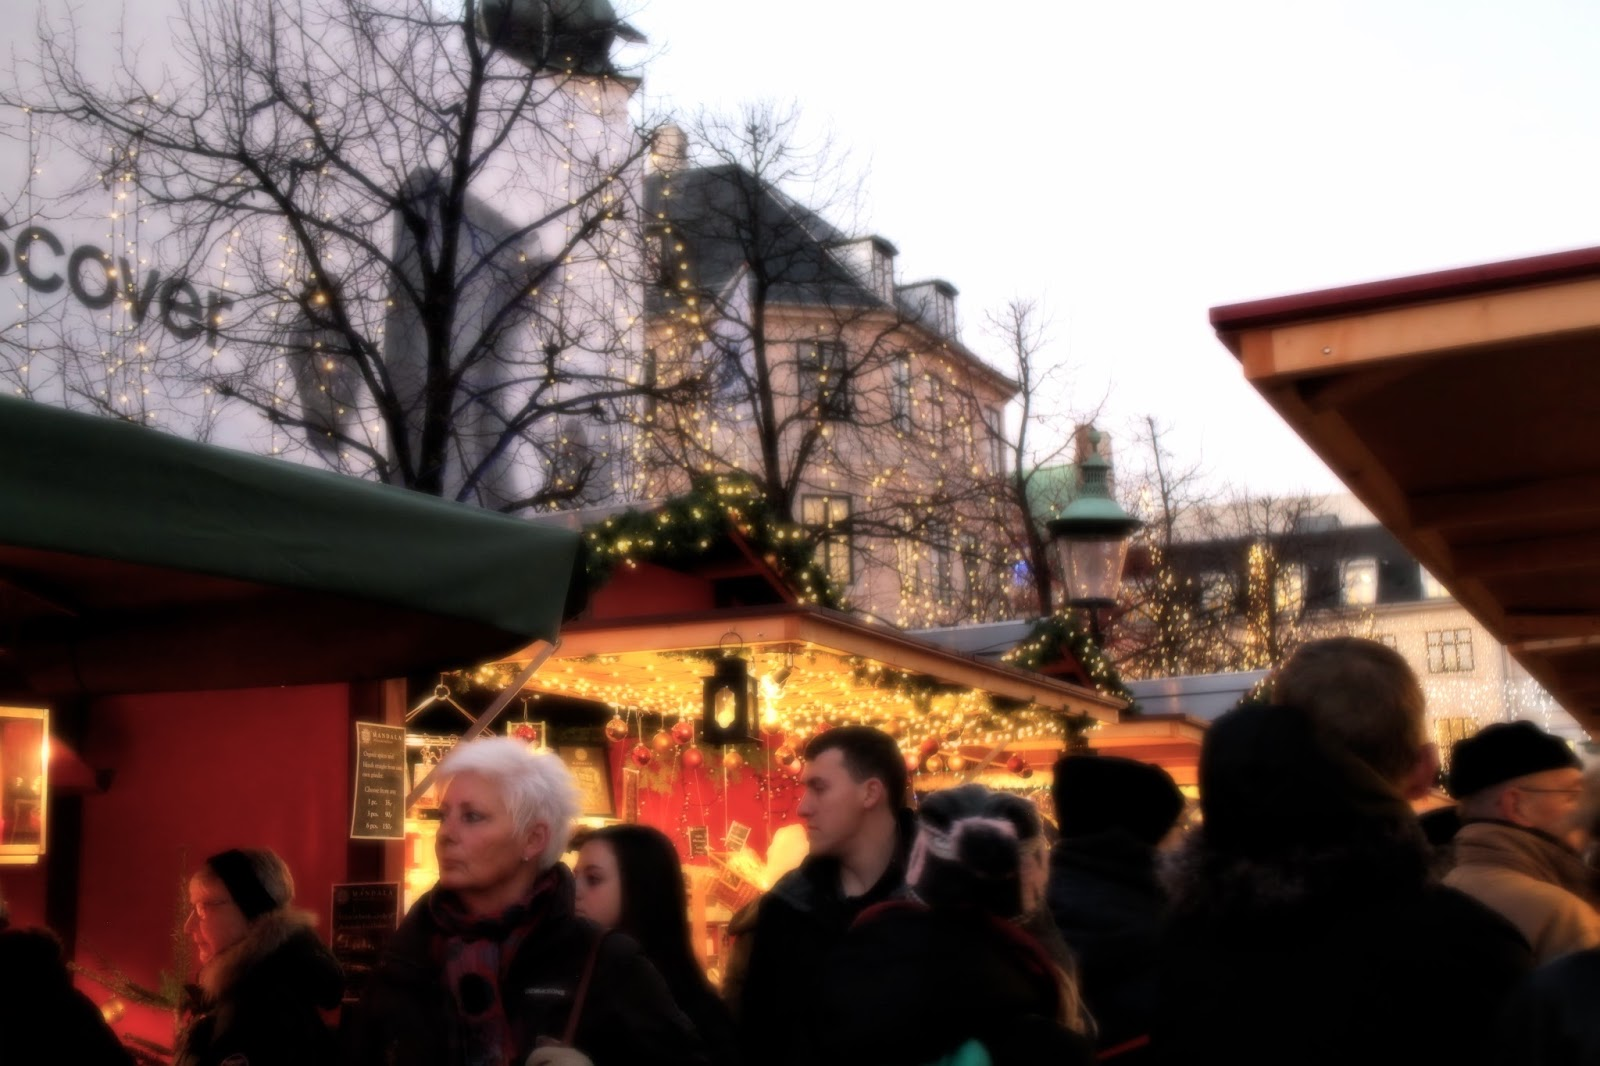 Copenhagen Christmas Market - stalls and blurry shot